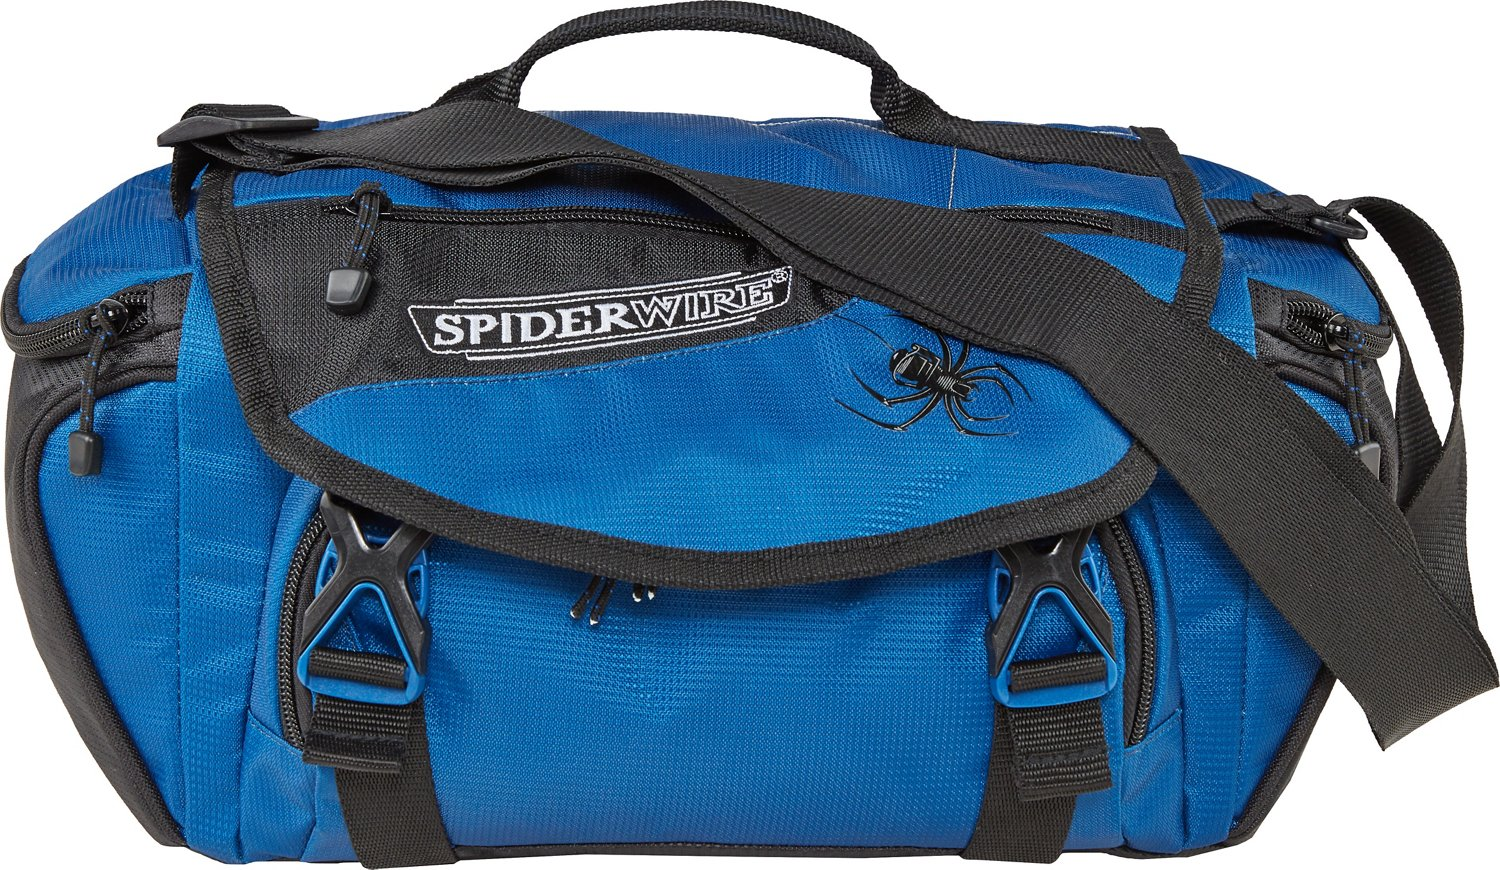 Spiderwire Tackle Bag - view number 3